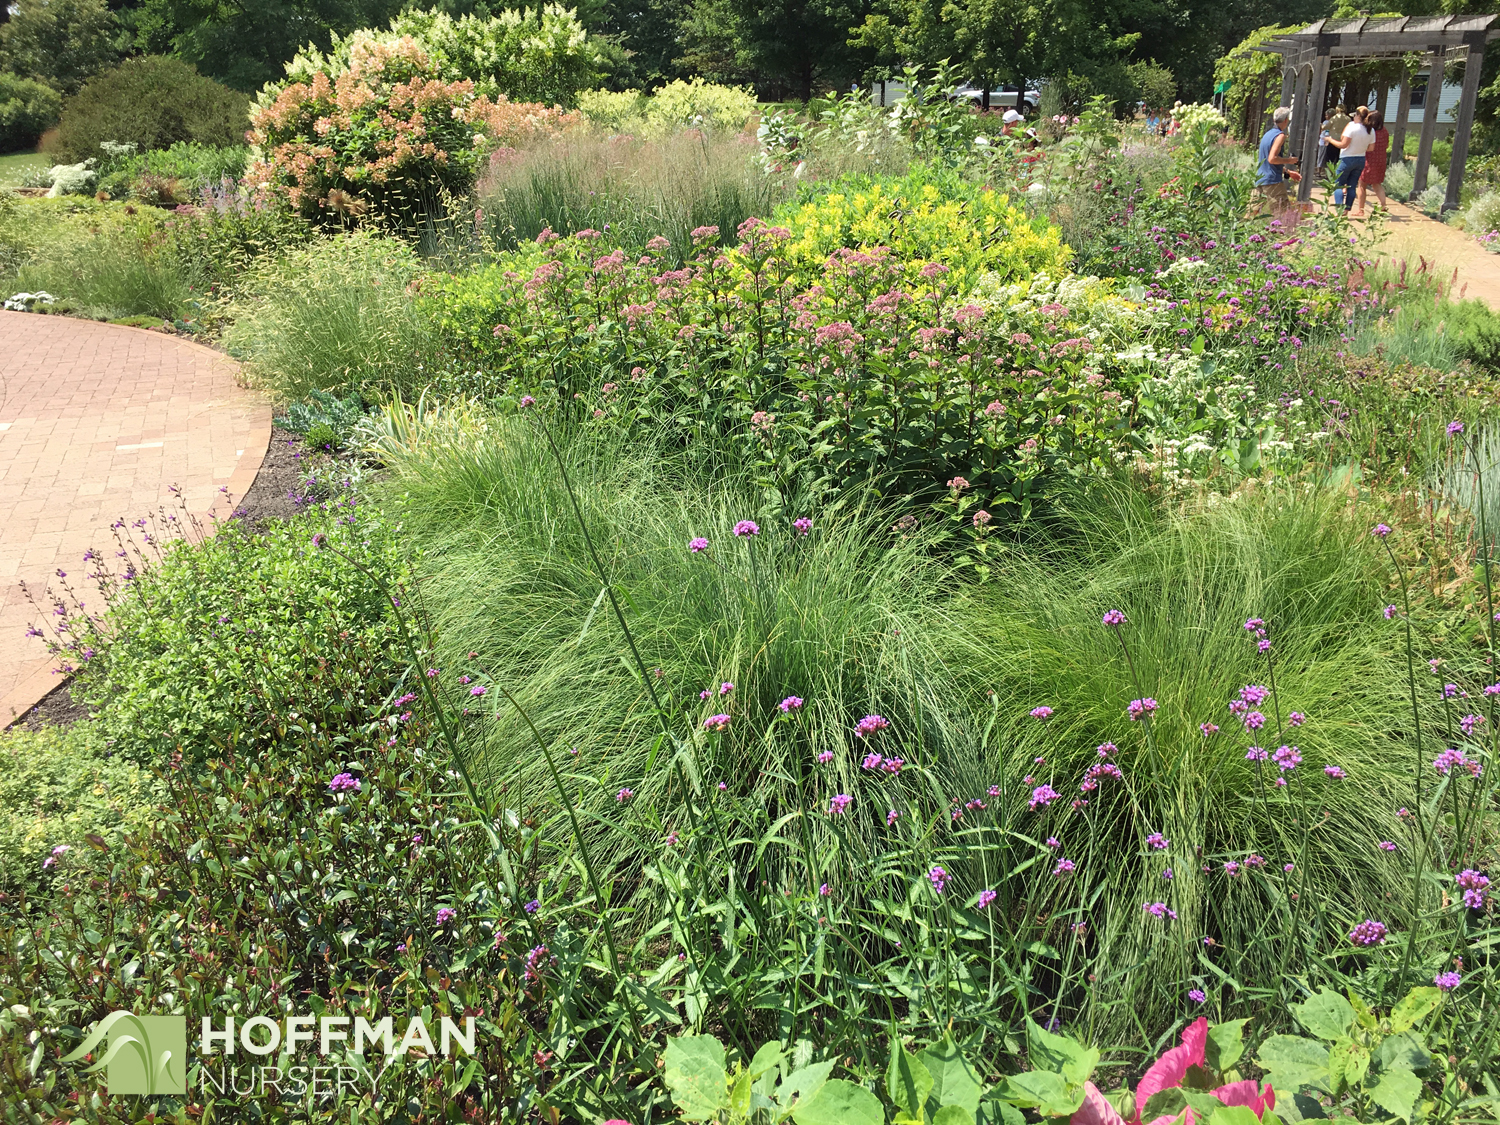 Sporobolus heterolepis in the foreground thrives in this perennial planting at Noerenberg Memorial Gardens.